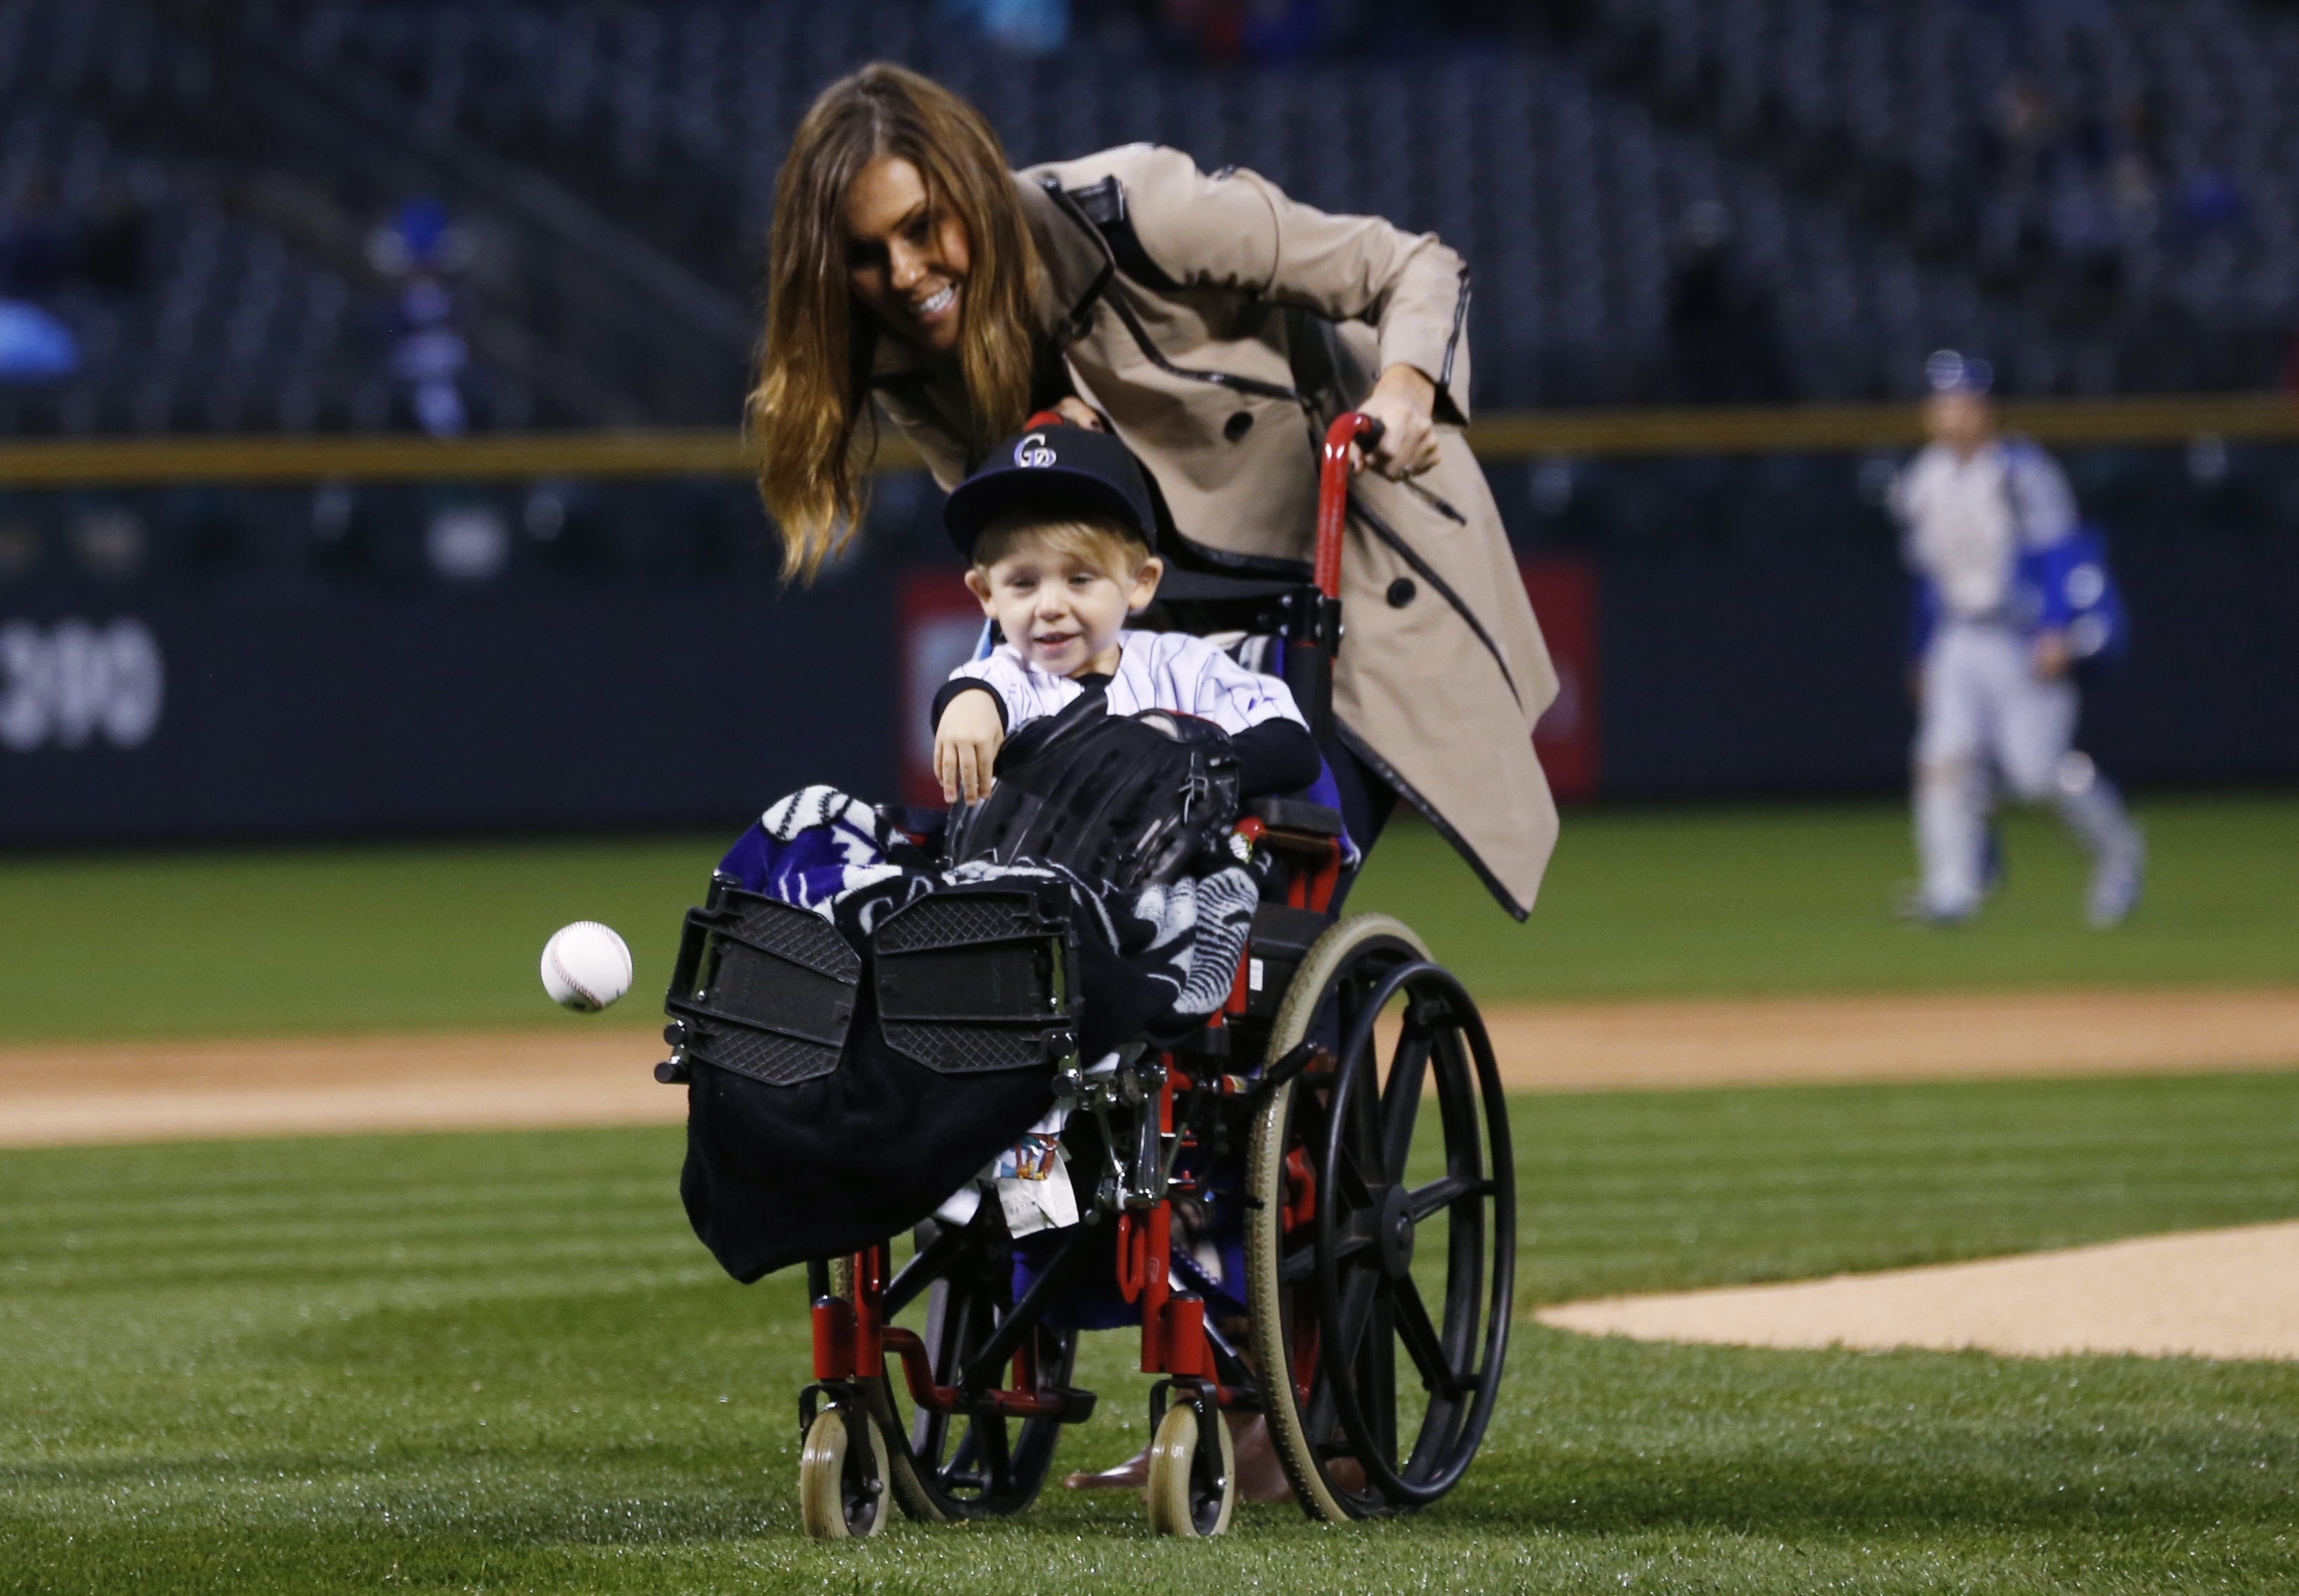 Two-year-old Jameson Axford throws out the ceremonial first pitch as his mother, Nicole, looks on before the Colorado Rockies host the Los Angeles Dodgers in a baseball game Friday, May 8, 2015, in Denver. The little boy is the youngest son of Rockies rel